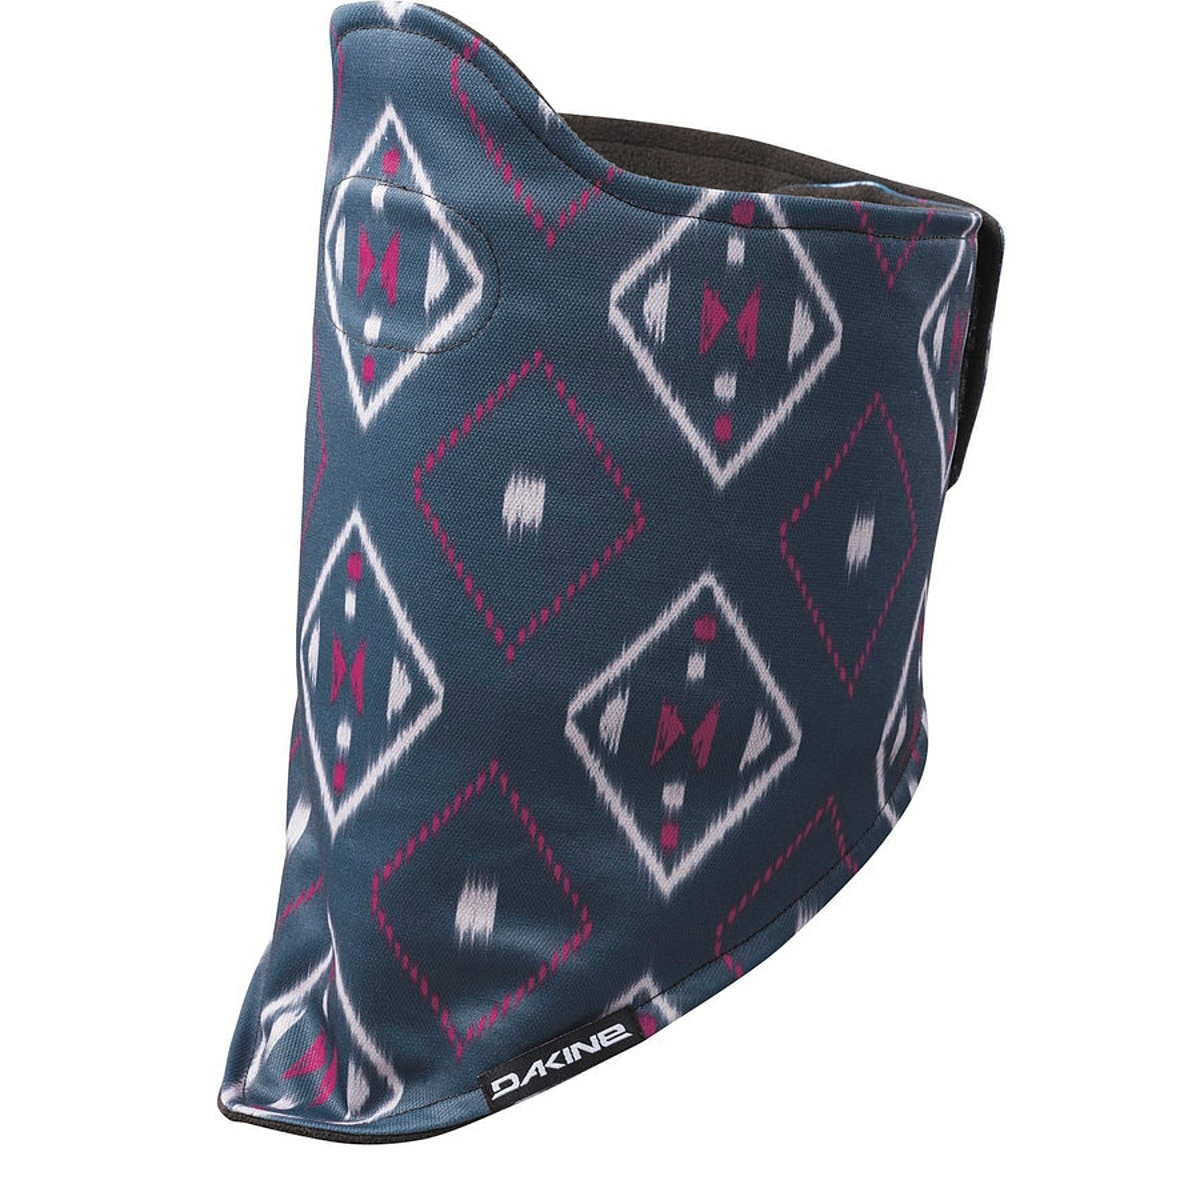 photo: DaKine Desperado Neck Gaiter